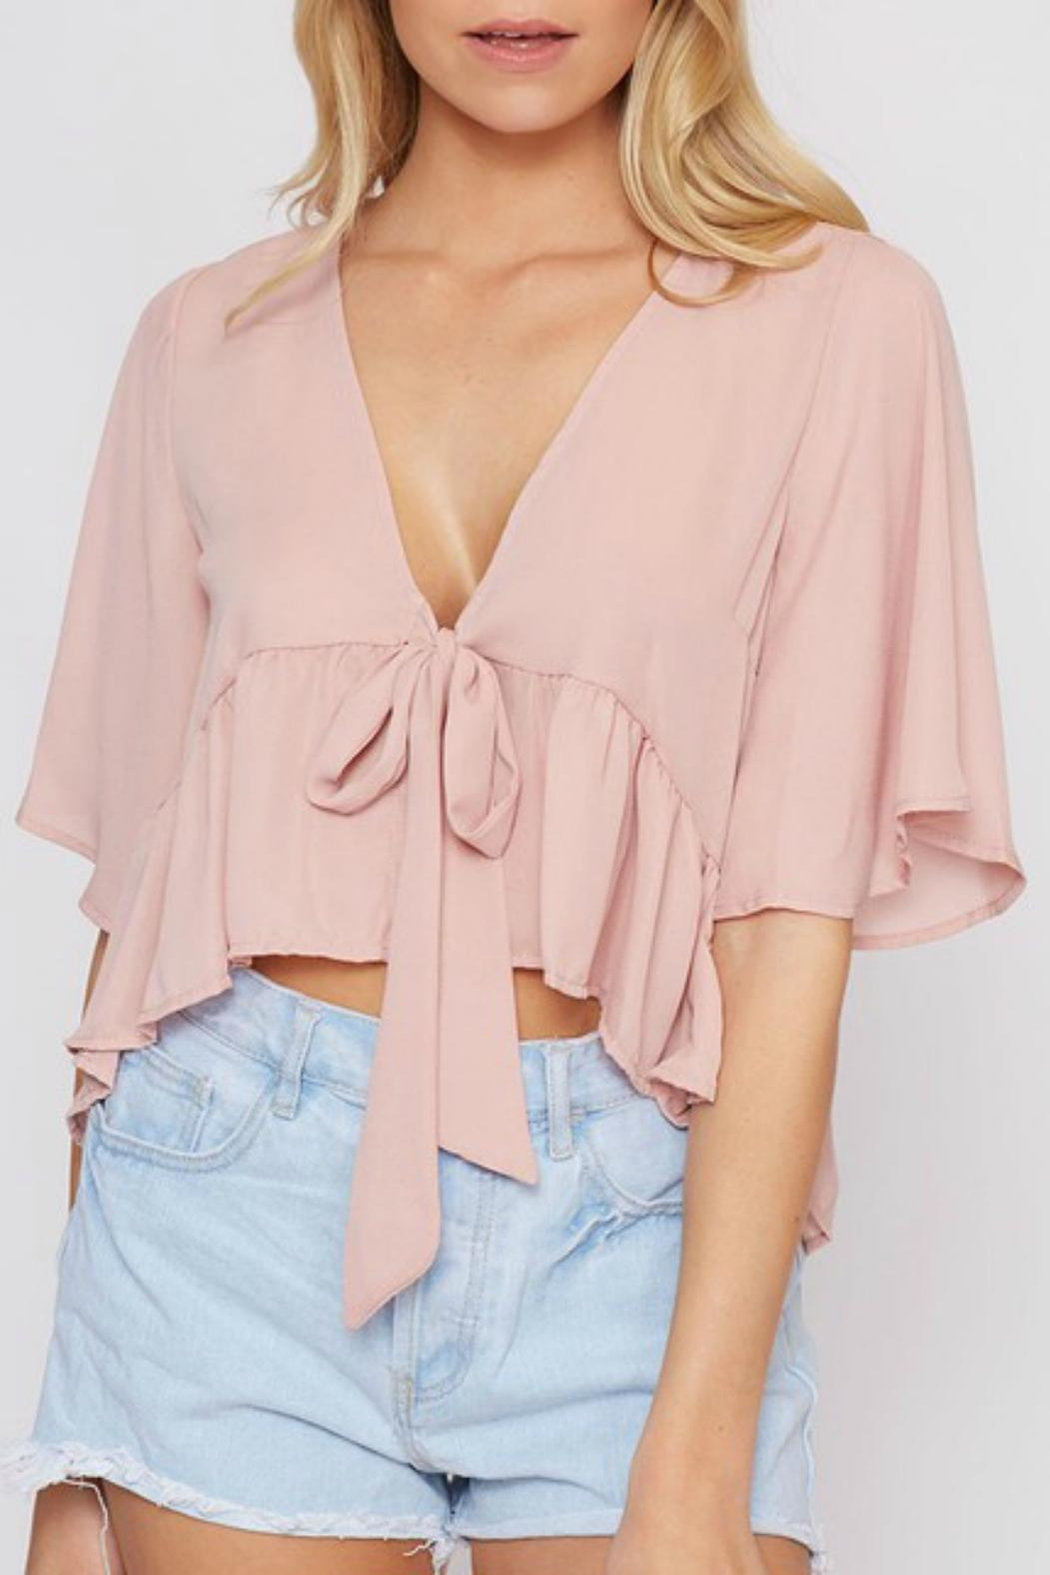 Pretty Little Things Flyaway Tie Top - Front Cropped Image